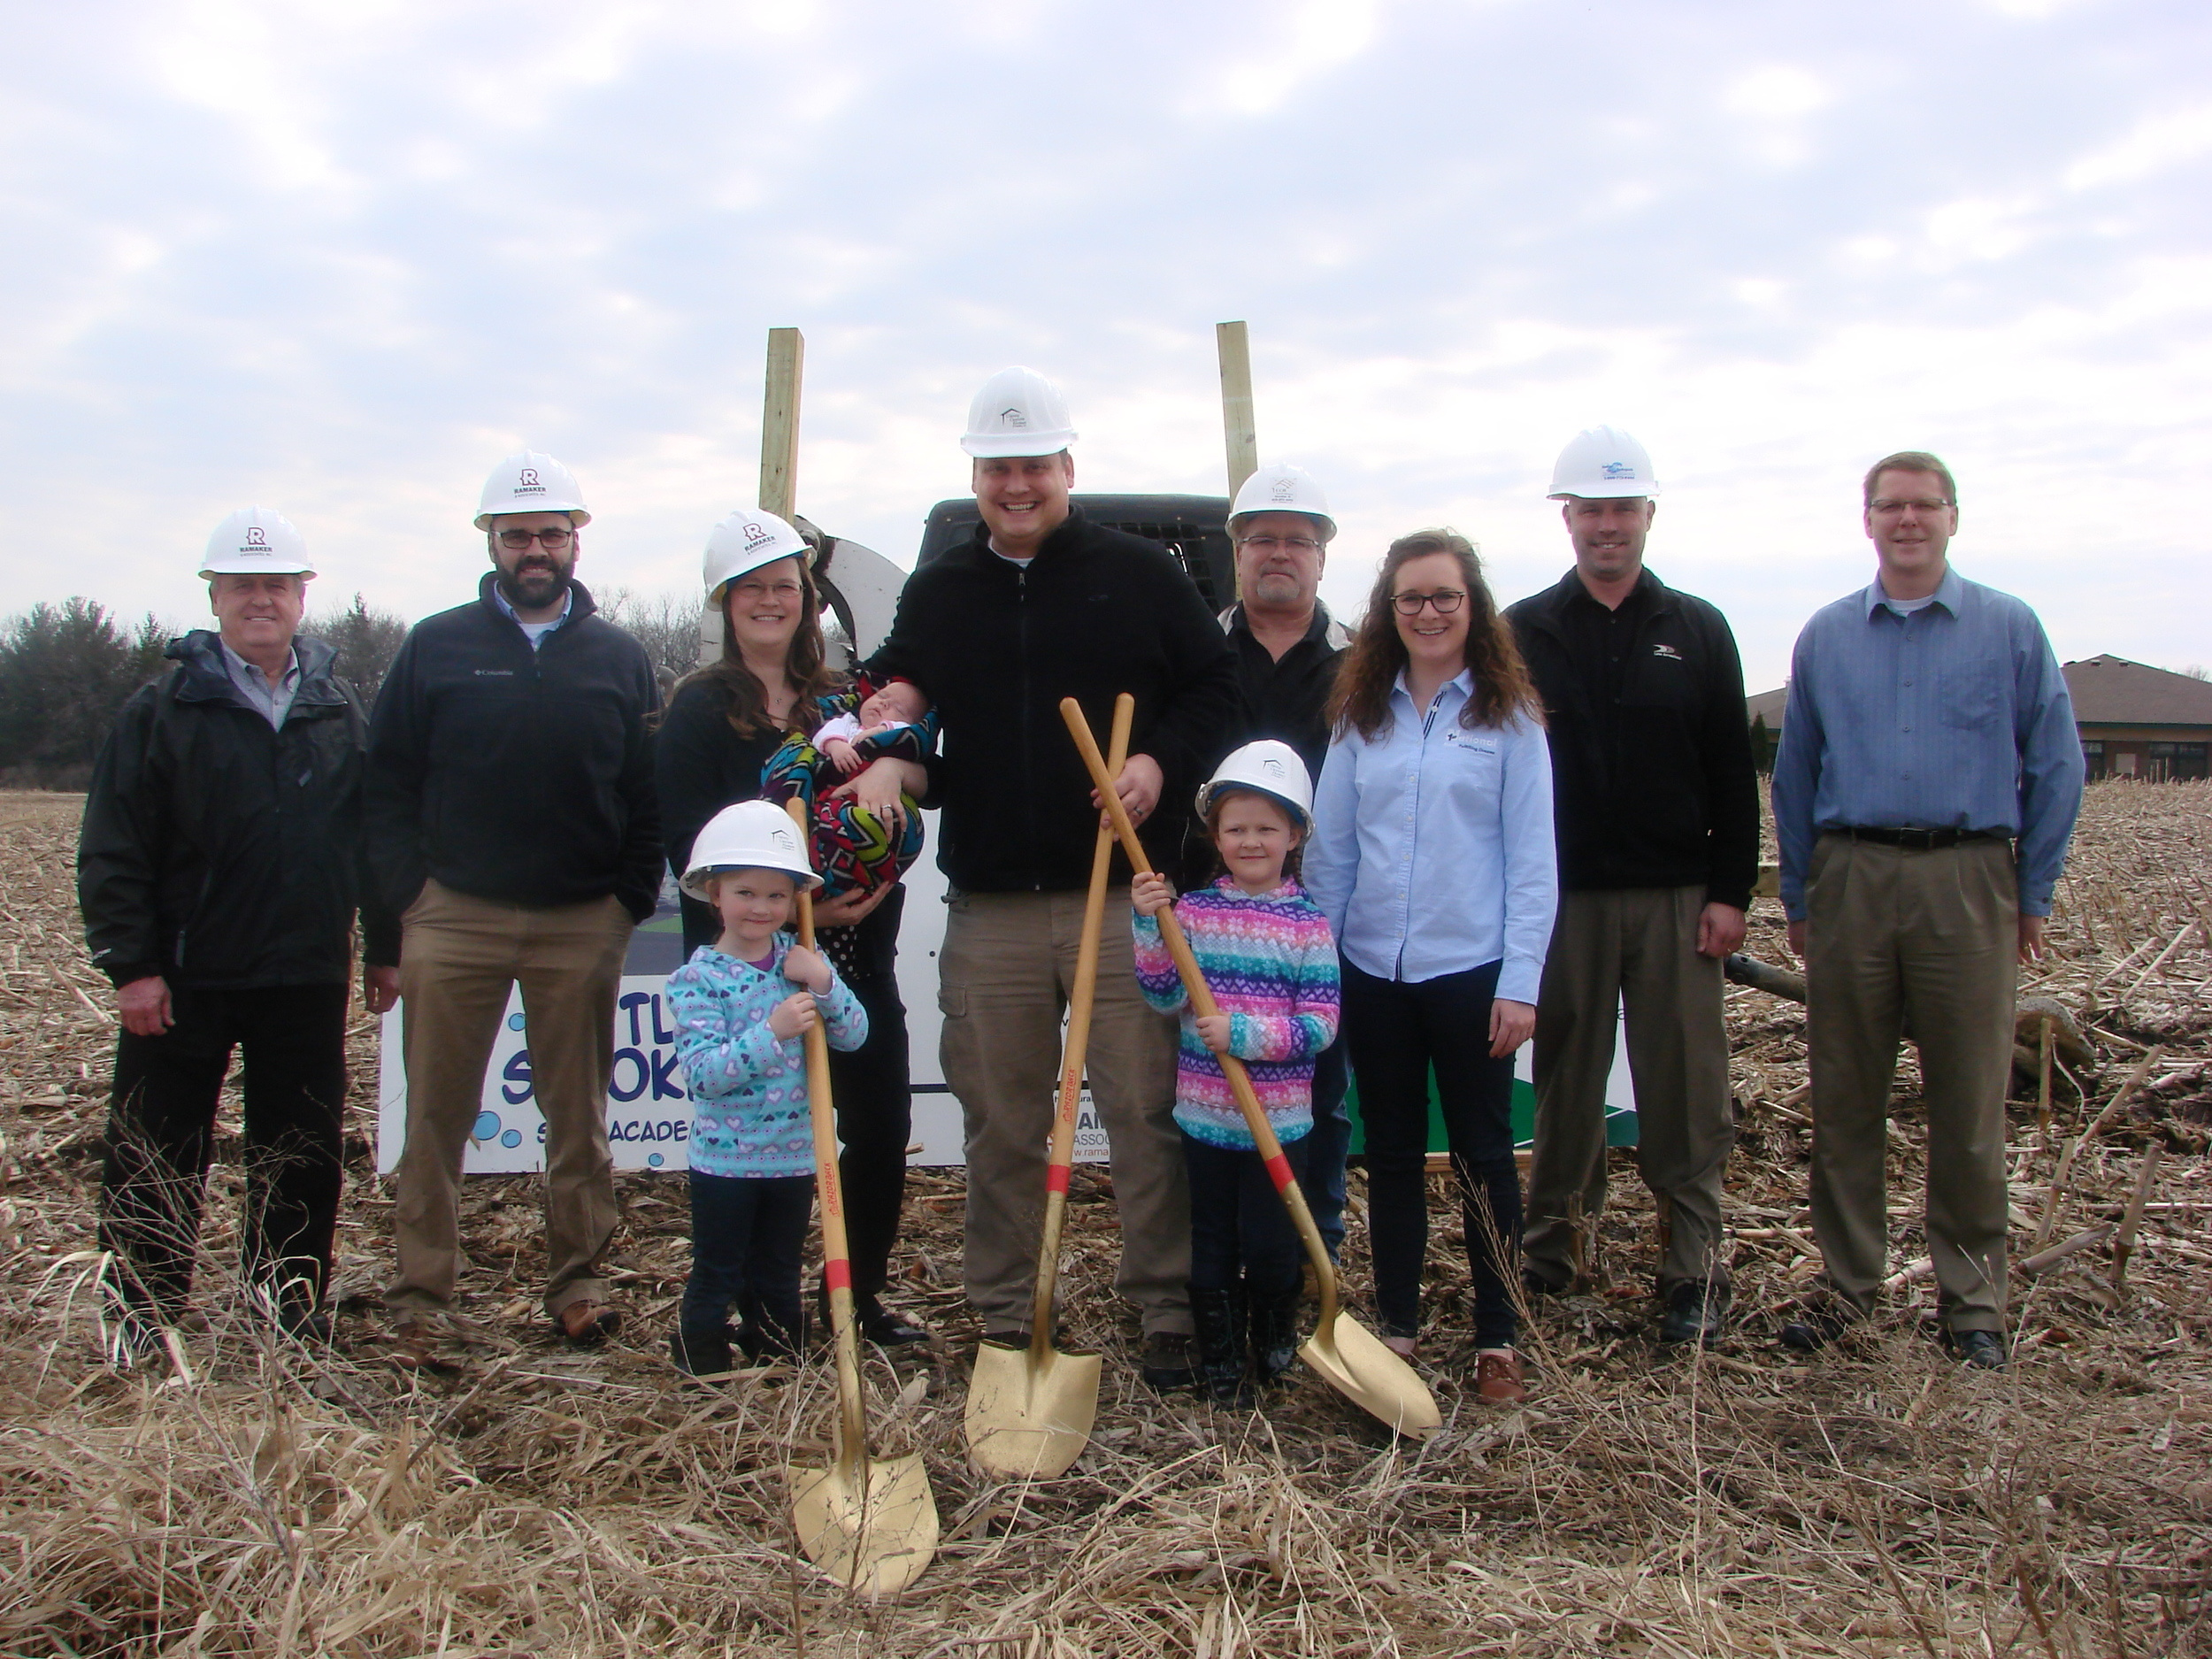 Breaking ground picture at Little Strokes Swim Academy in Waunakee, WI